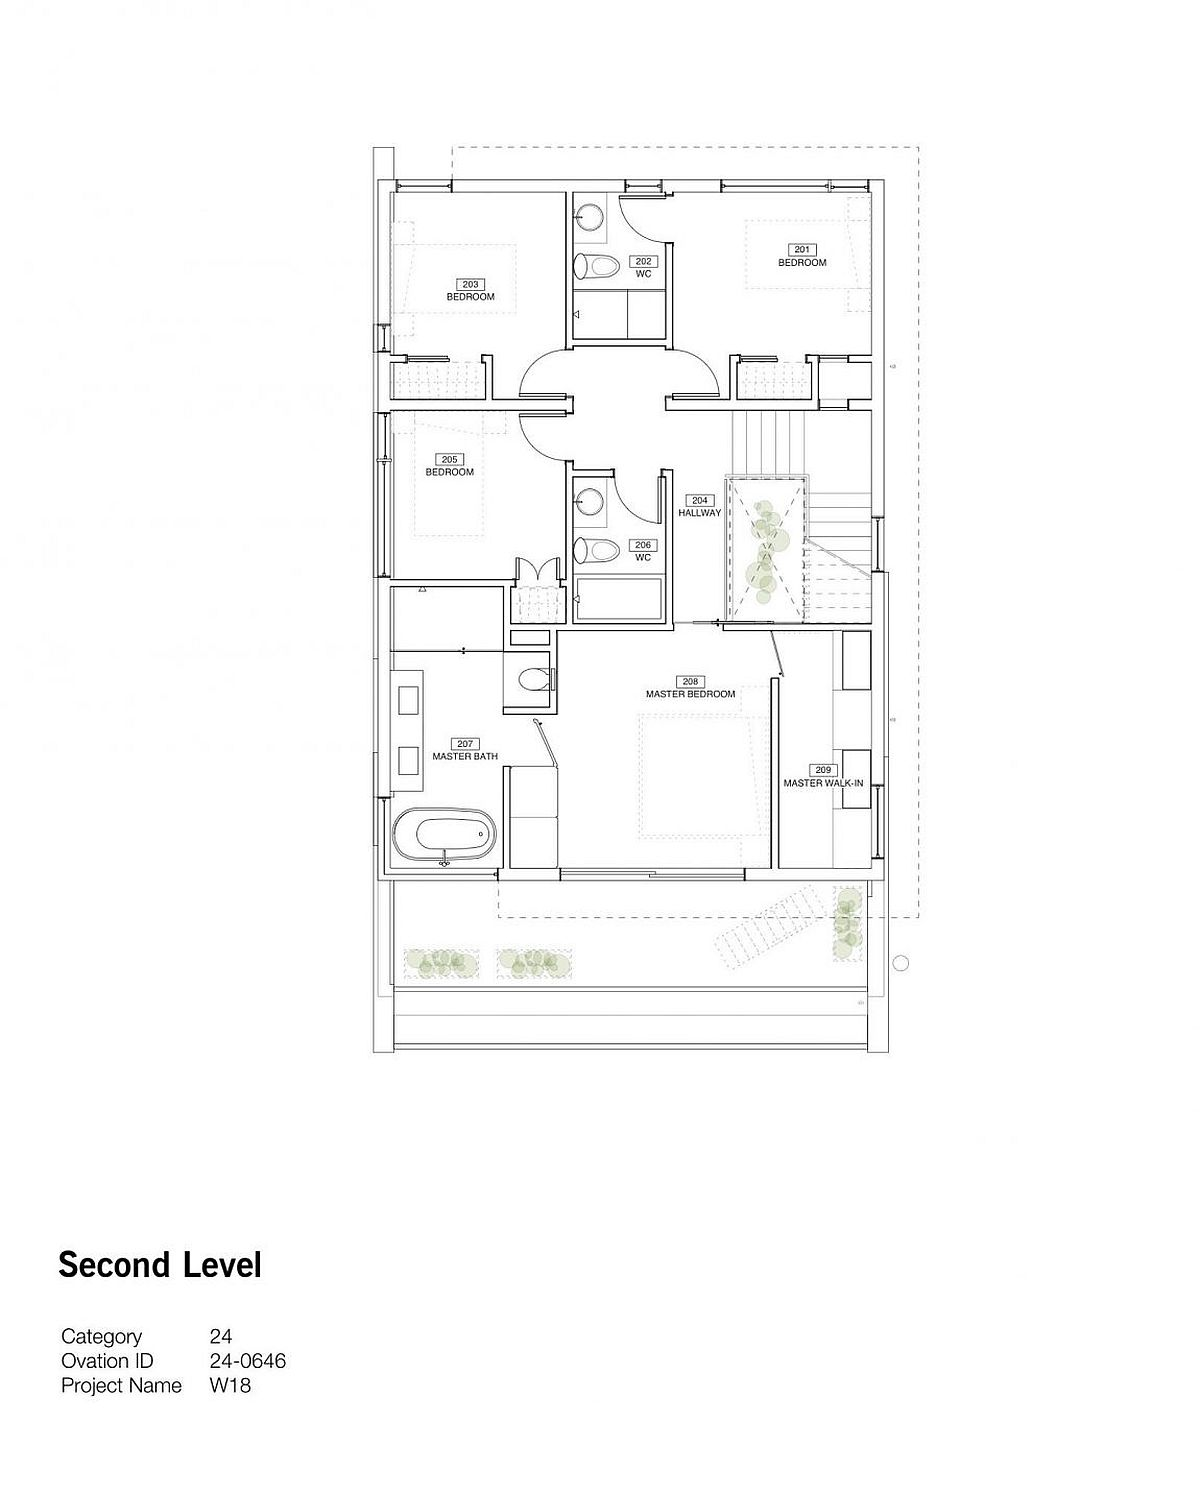 Second level floor plan with master bedroom and additional bedrooms